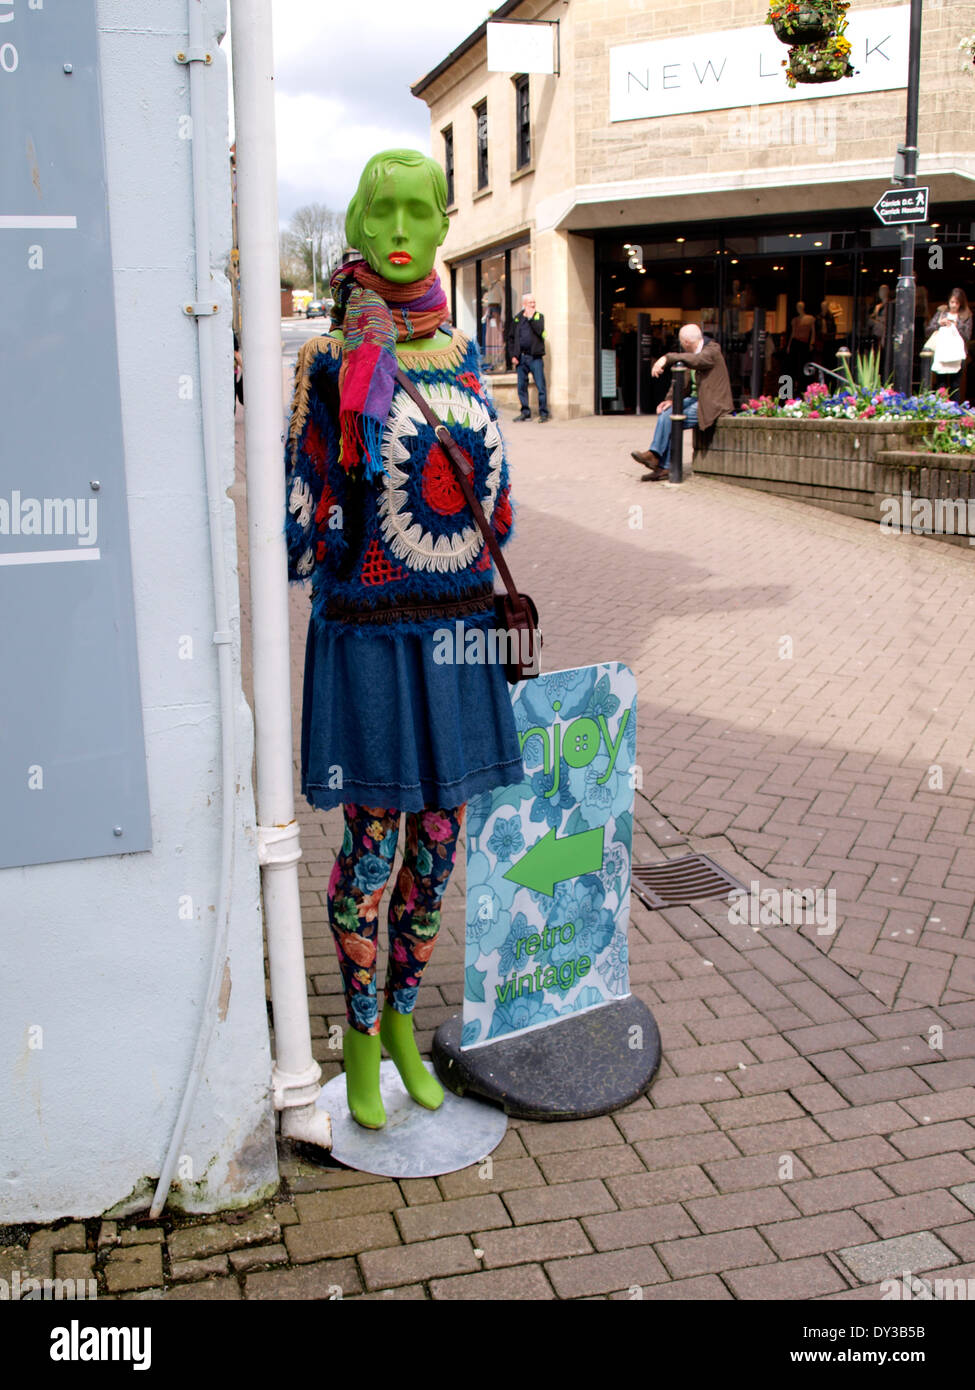 Green mannikin advertizing retro clothes store, Truro, Cornwall, UK - Stock Image